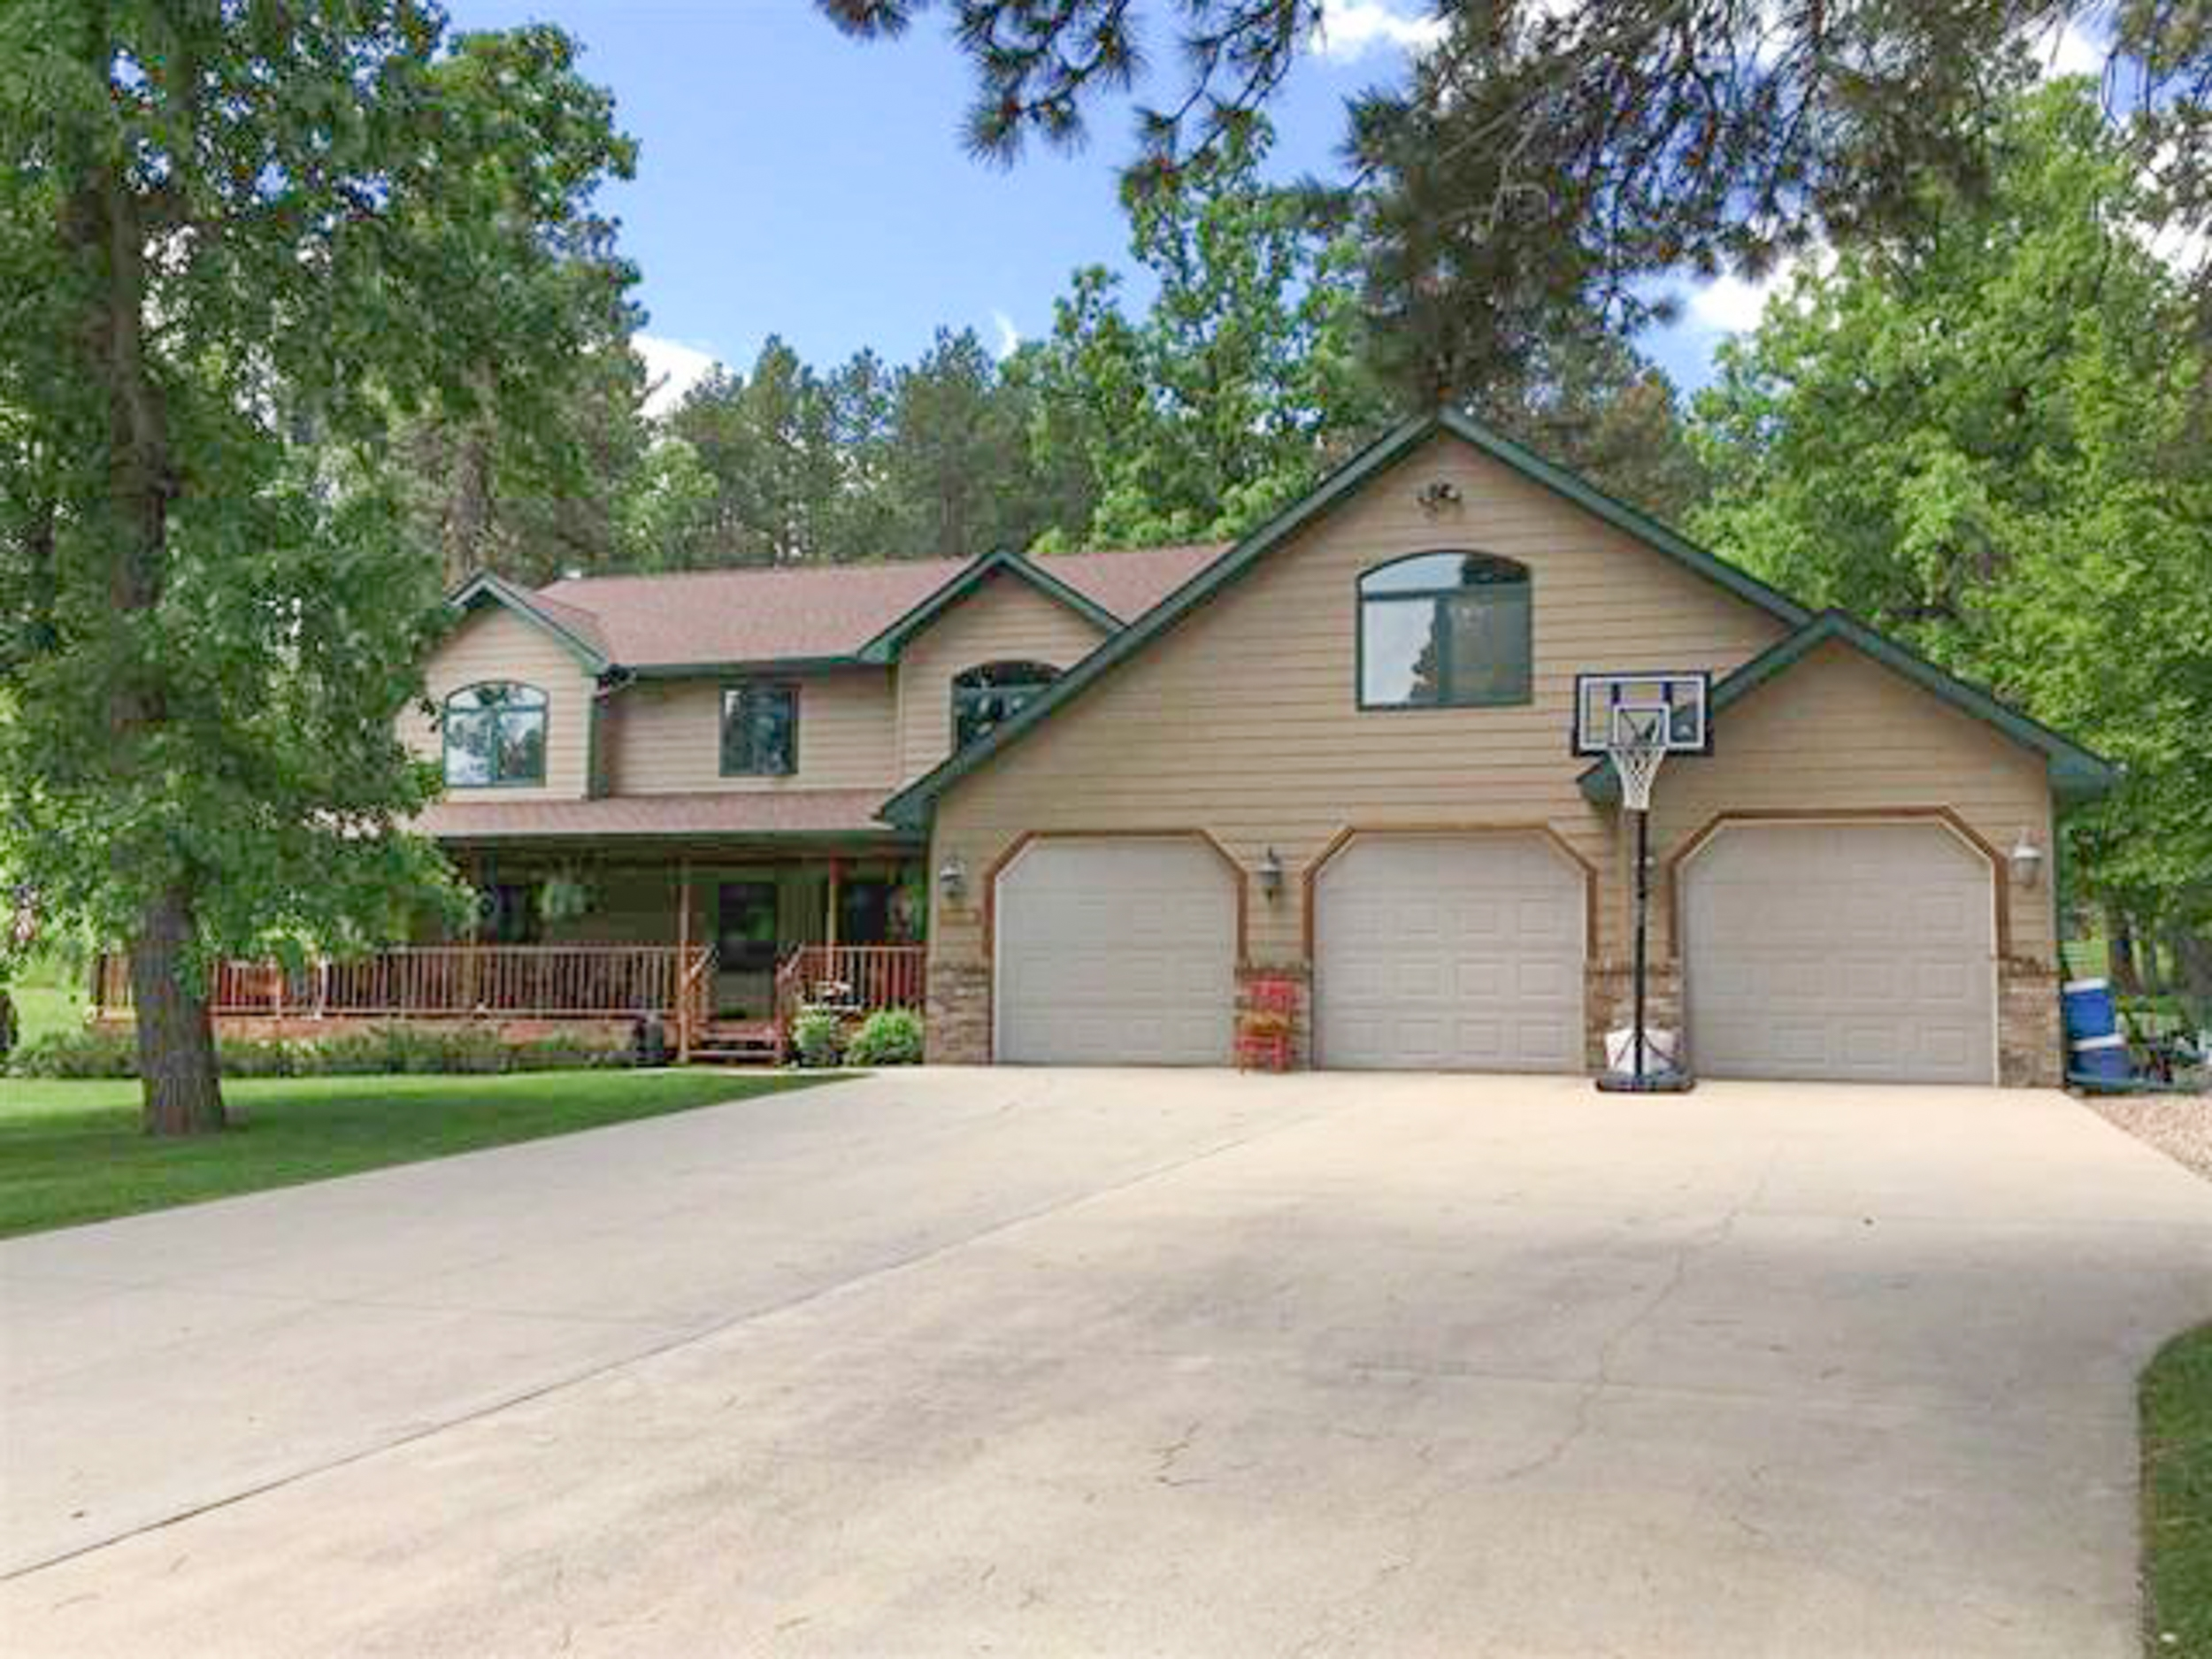 Boulder Canyon Subdivision home on 1.21 Acres